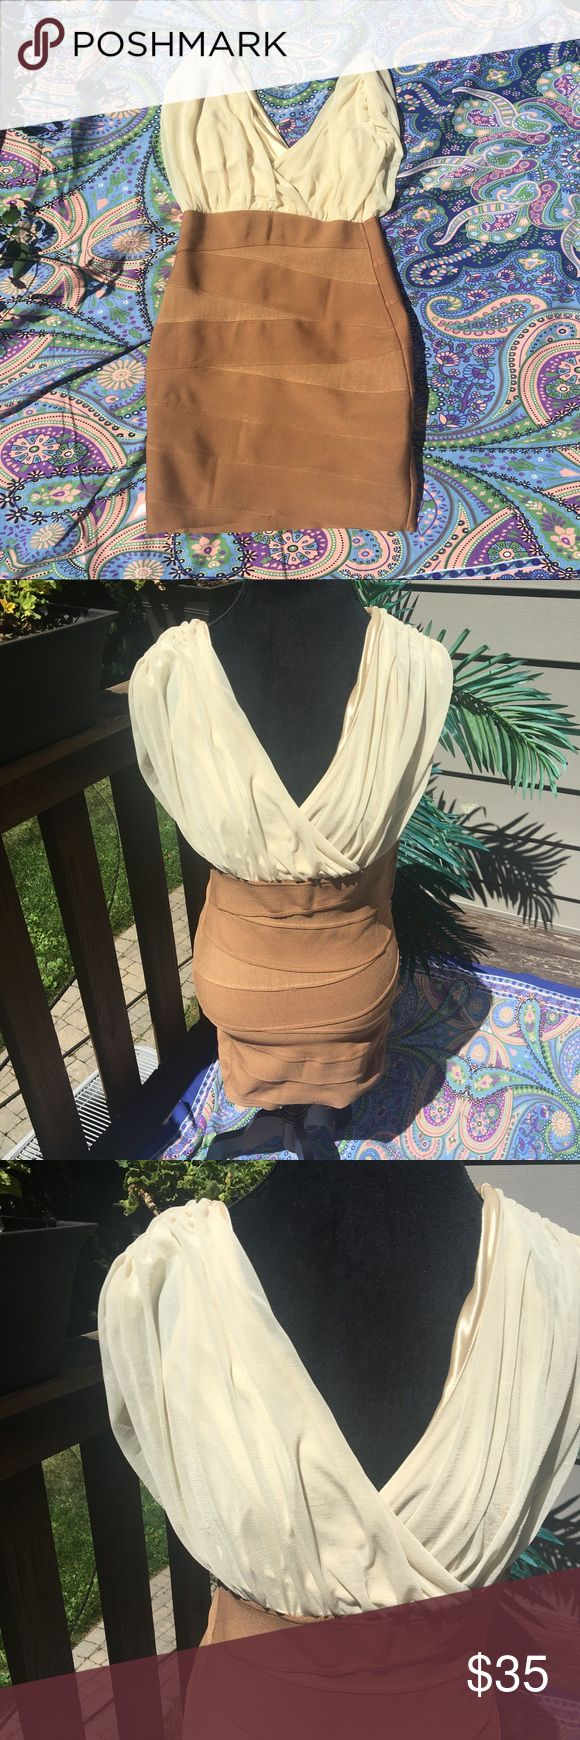 WoW couture | Jamie Dress Beautiful dress with tan pencil skirt bottom and a beautiful blouse top. Has a side zipper on the side and a little snap on the front. Like new condition. Size medium. WOW couture Dresses Midi